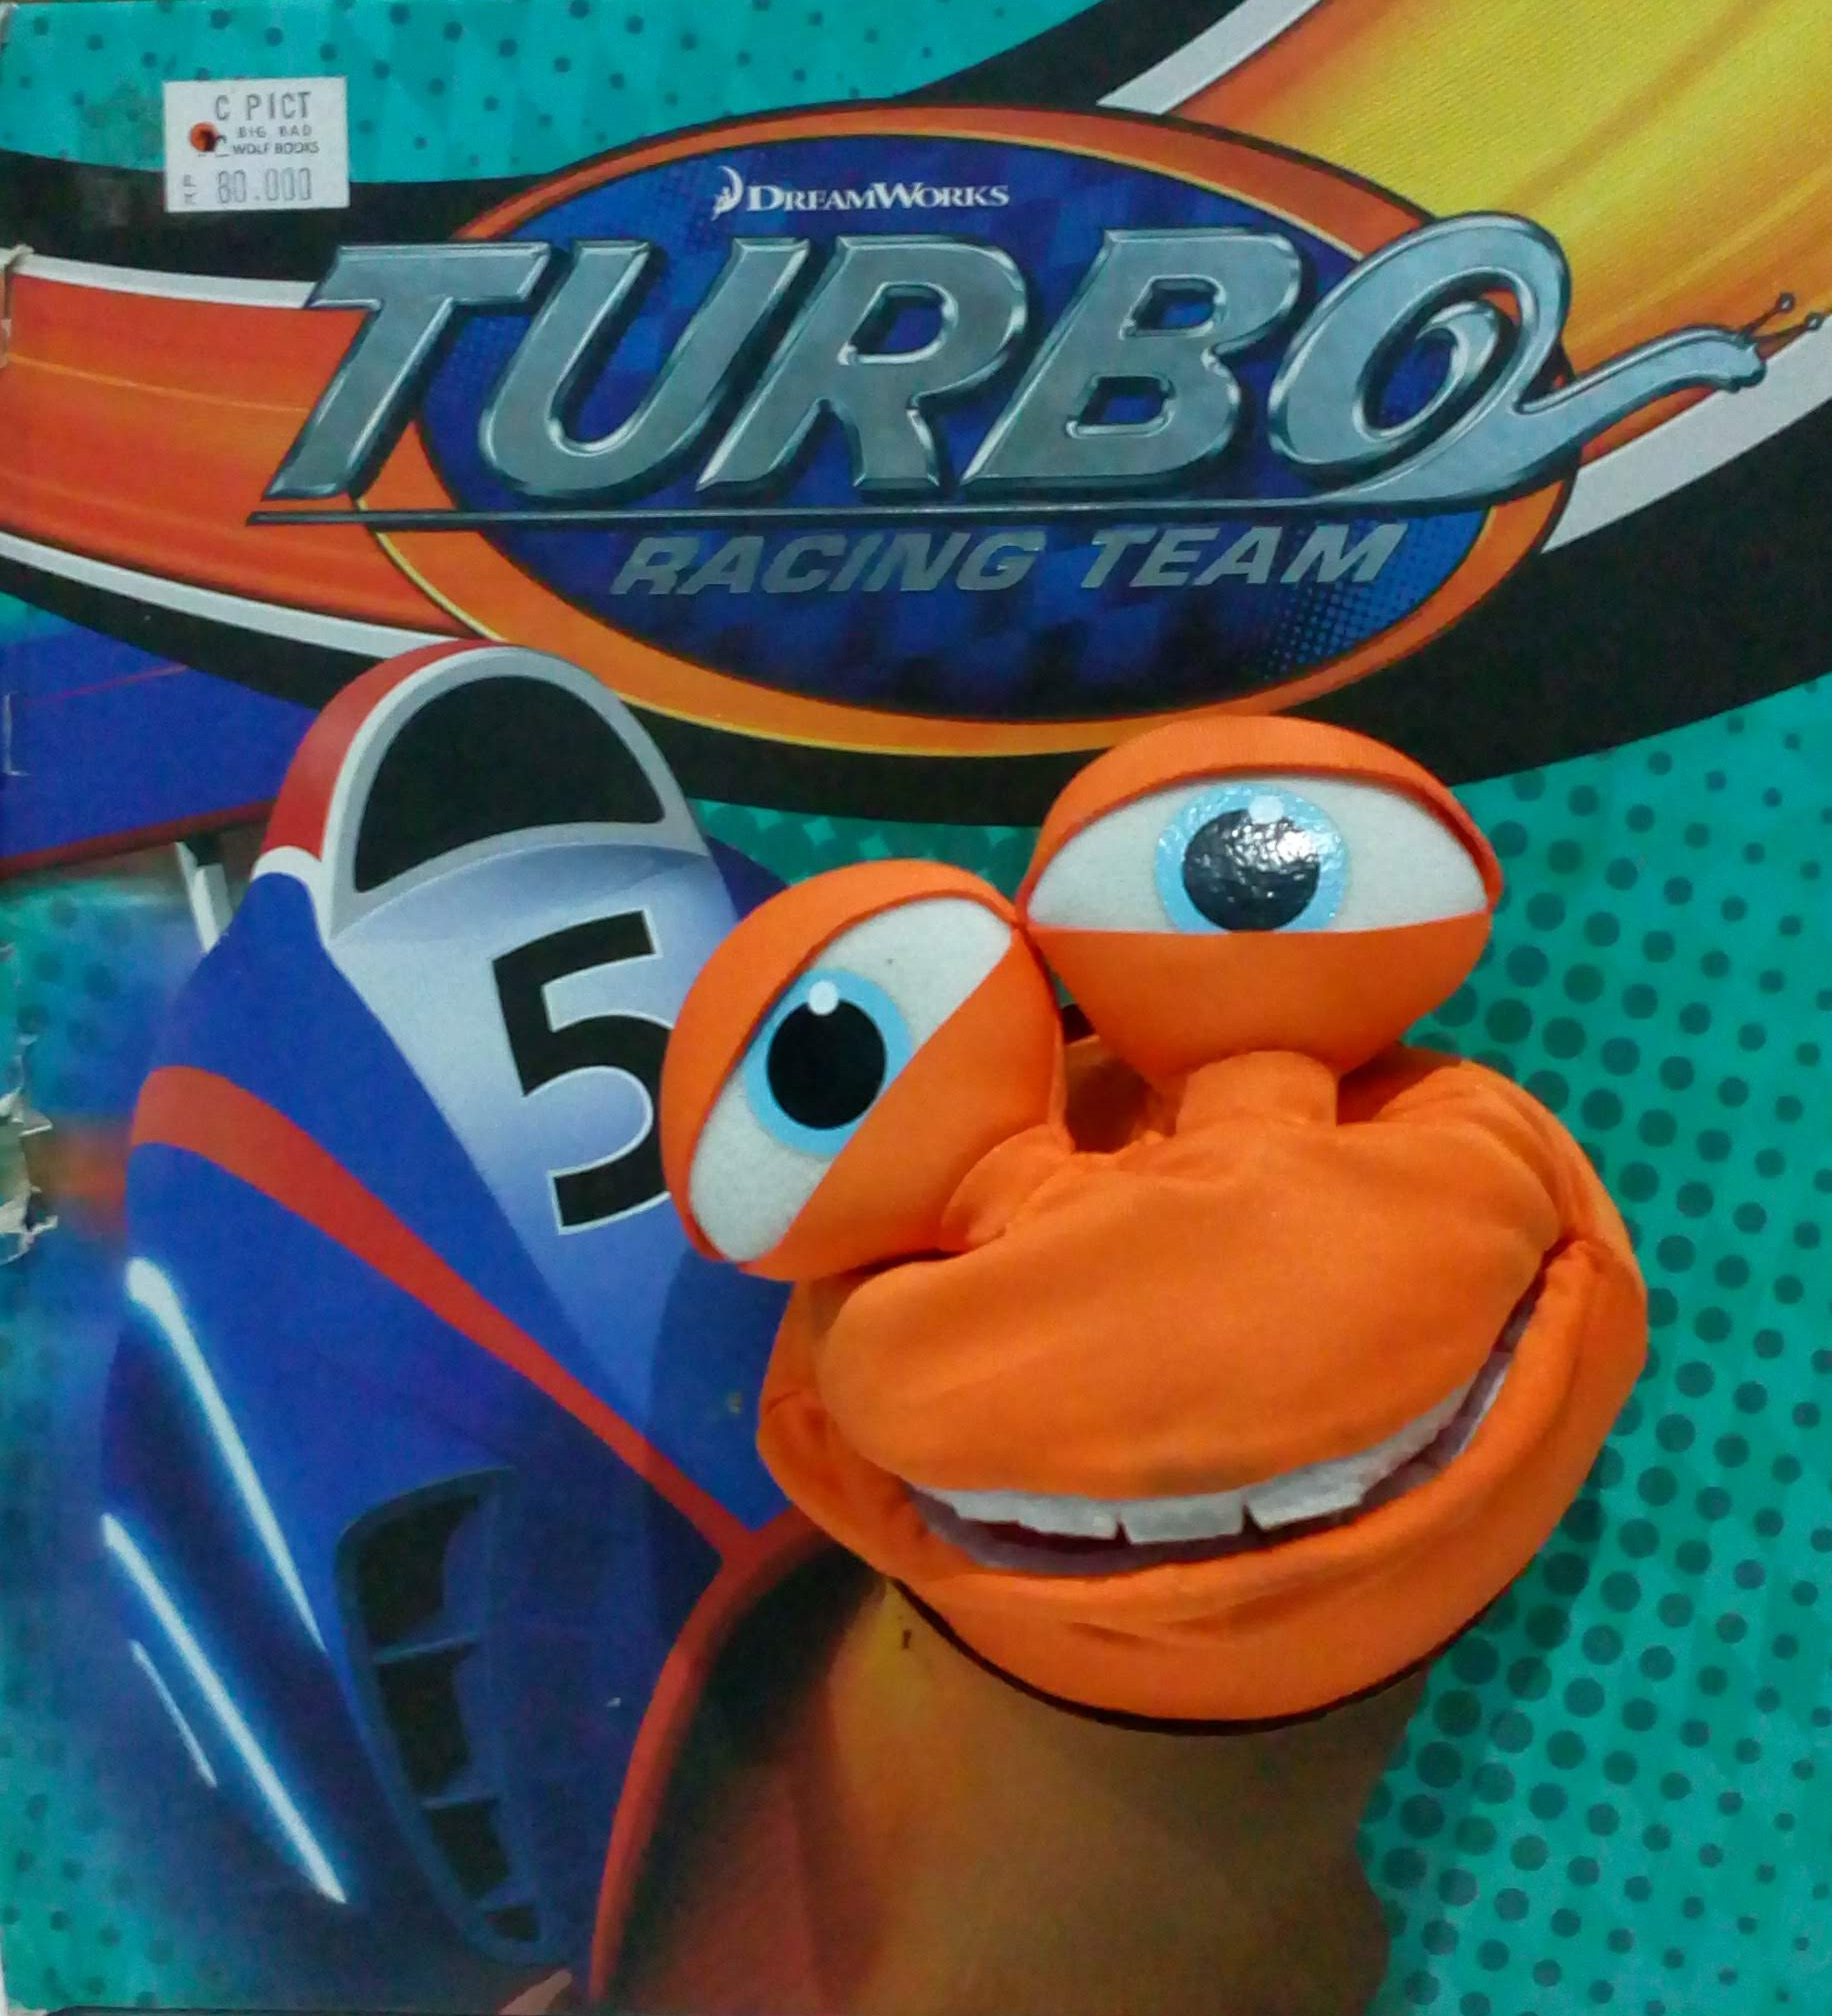 Turbo Racing Team My Name Is Turbo Sampul Buku